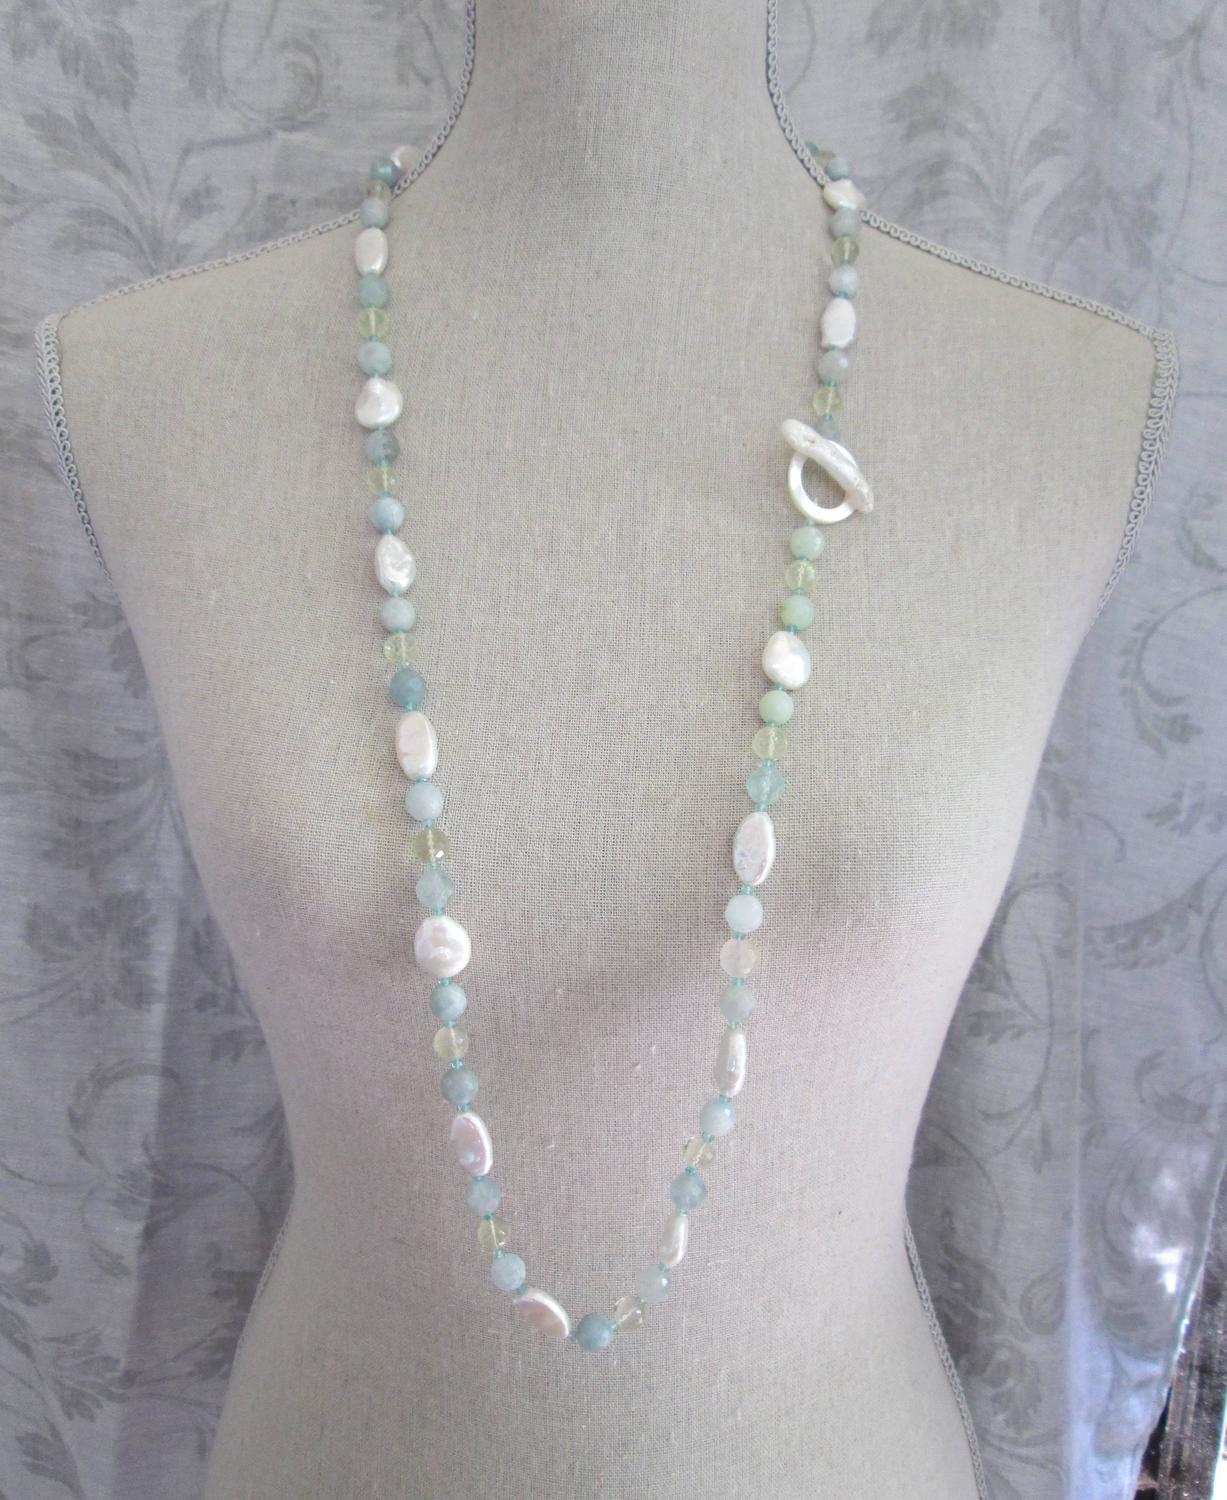 Instyle Decor Com Beverly Hills Beautiful Mother Of Pearl: Pearl And Multi-Gemstone Long Lariat Necklace For Sale At